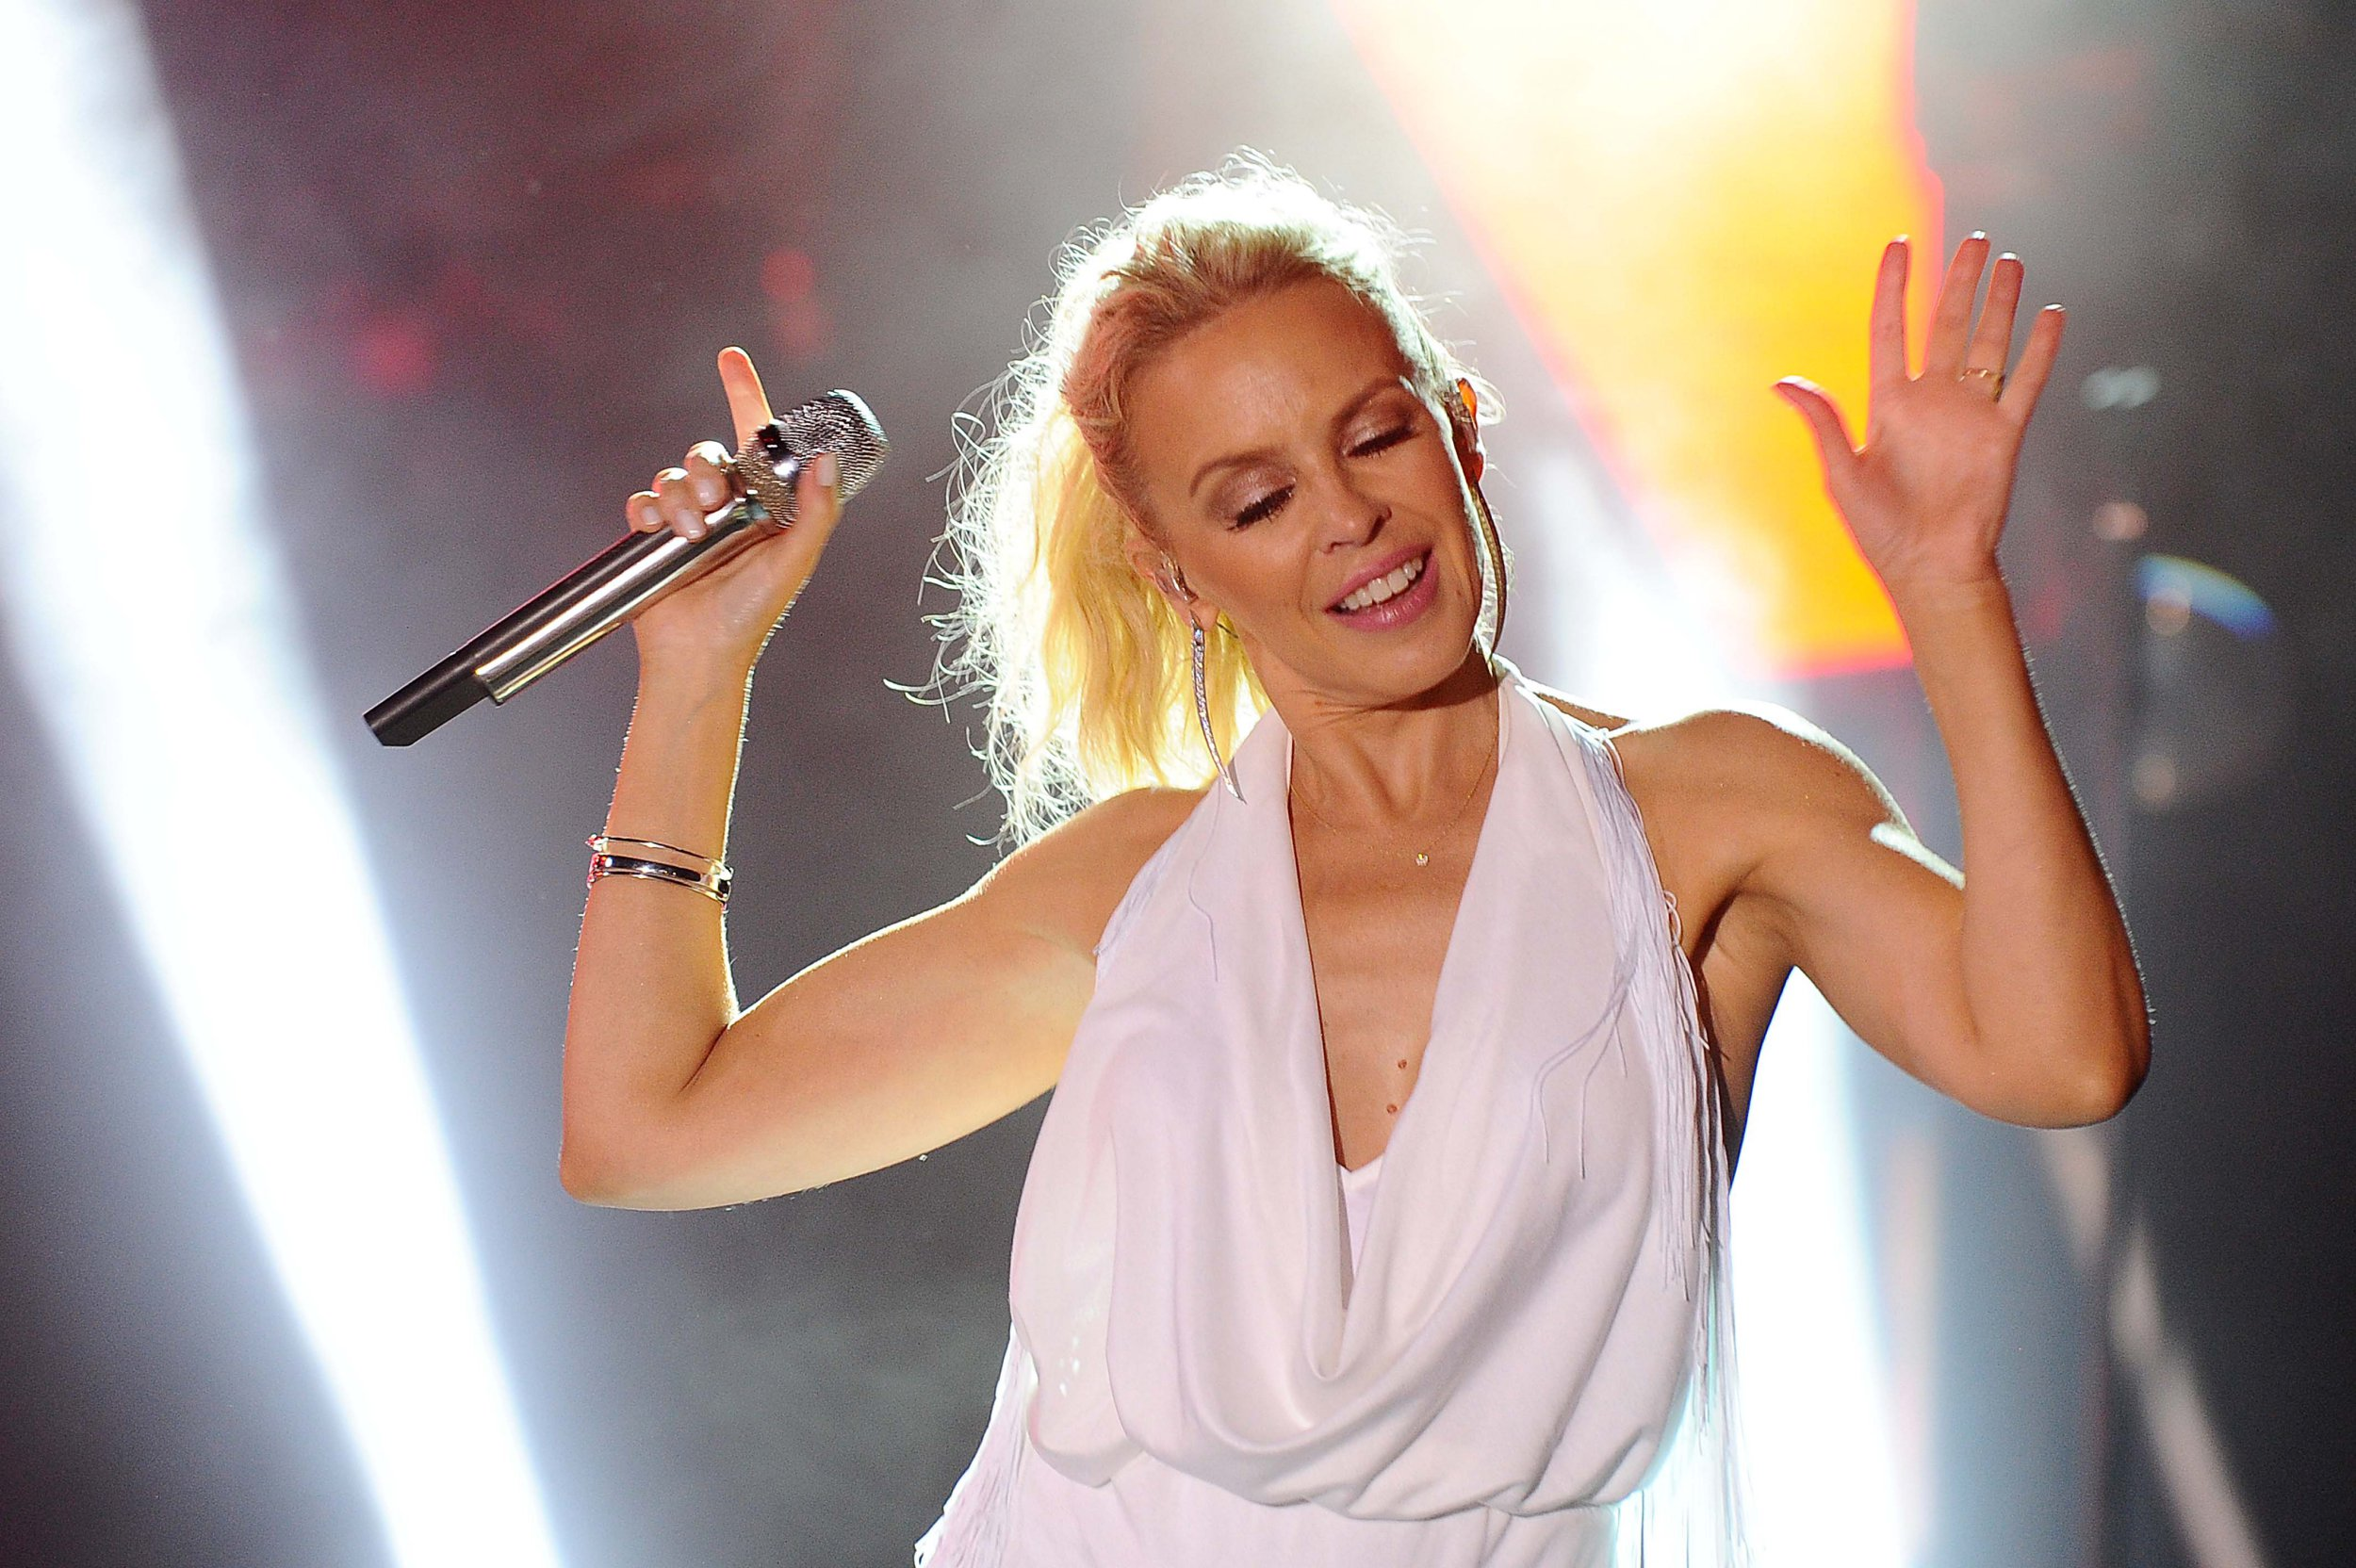 KYLIE MINOGUE - Mandatory Credit: Photo by Frezza Lafata/REX/Shutterstock (5829056i) Kylie Minogue Kylie Minogue in concert at the Hotel Cala Di Volpe, Costa Smeralda, Porto Cervo, Italy - 13 Aug 2016